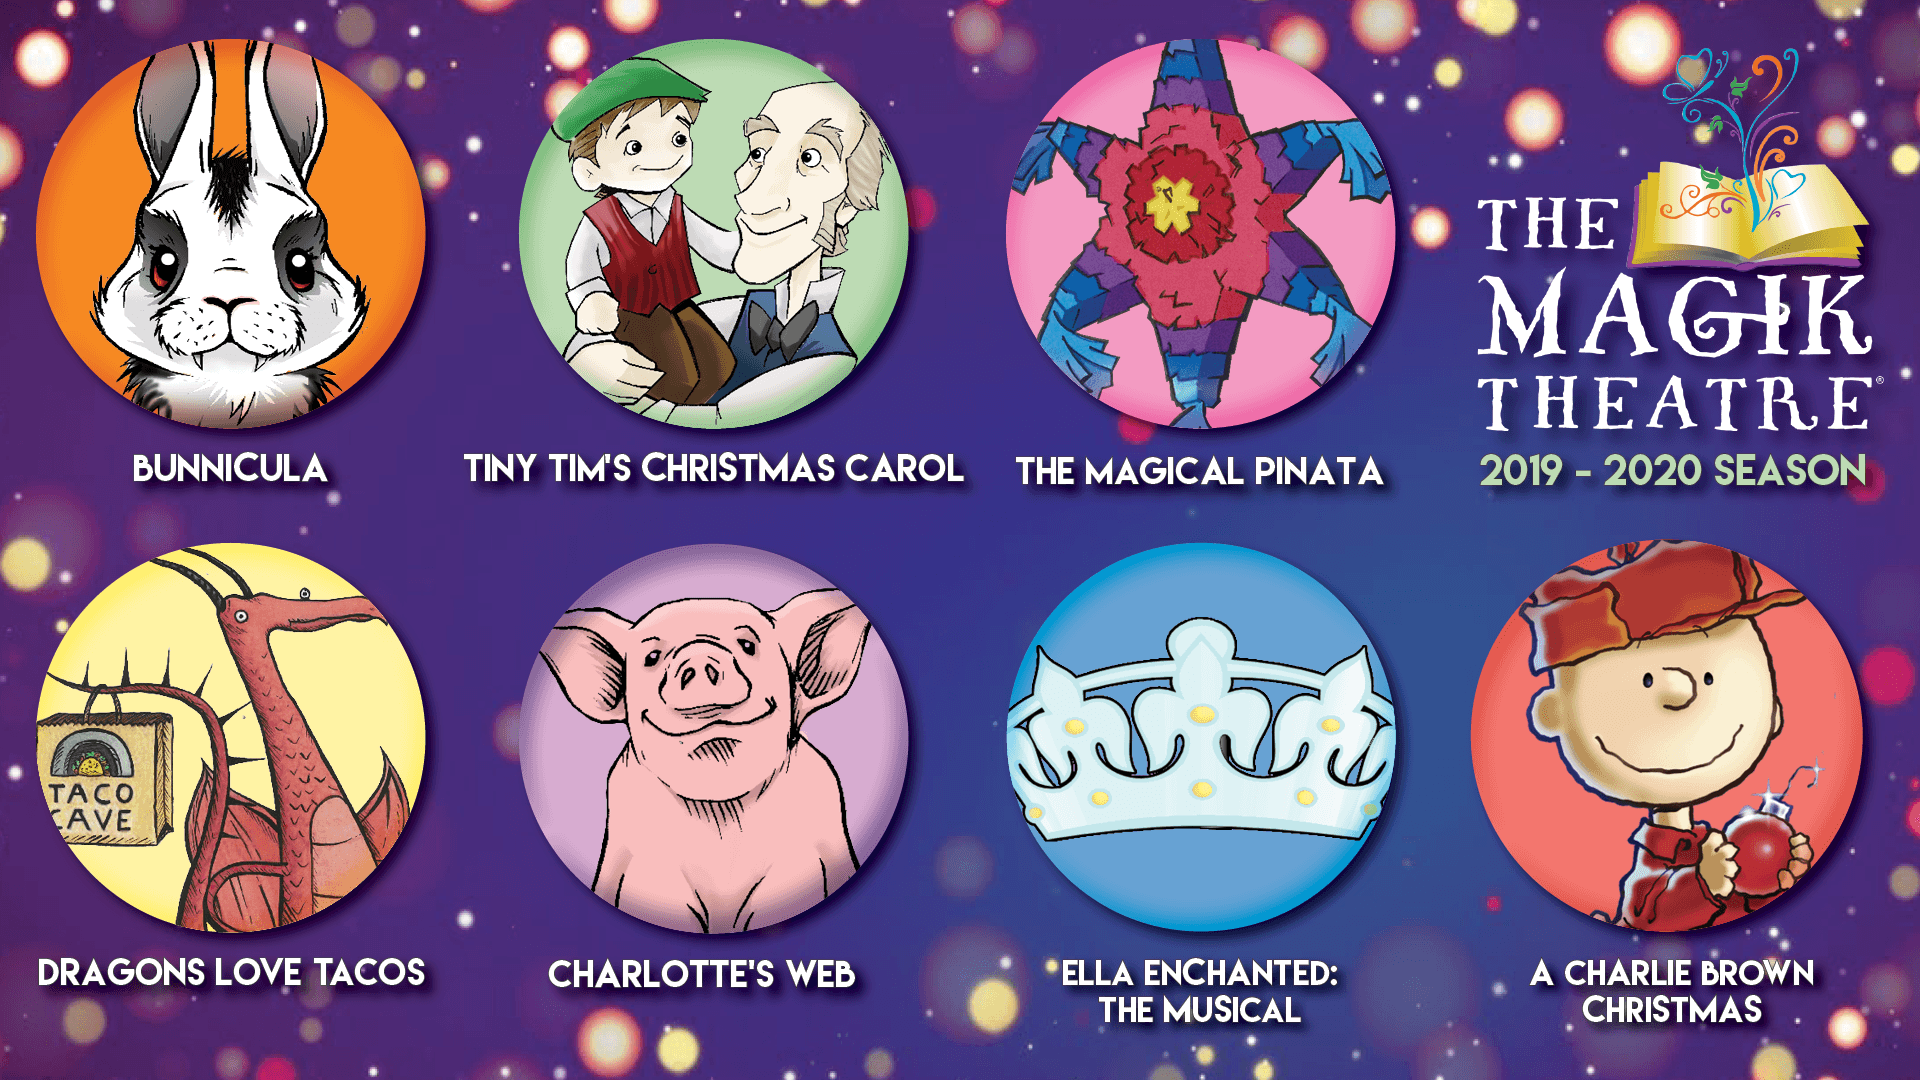 Charlie Brown Christmas Air Date 2019.The Magik Theatre Showtimes And Purchase Tickets